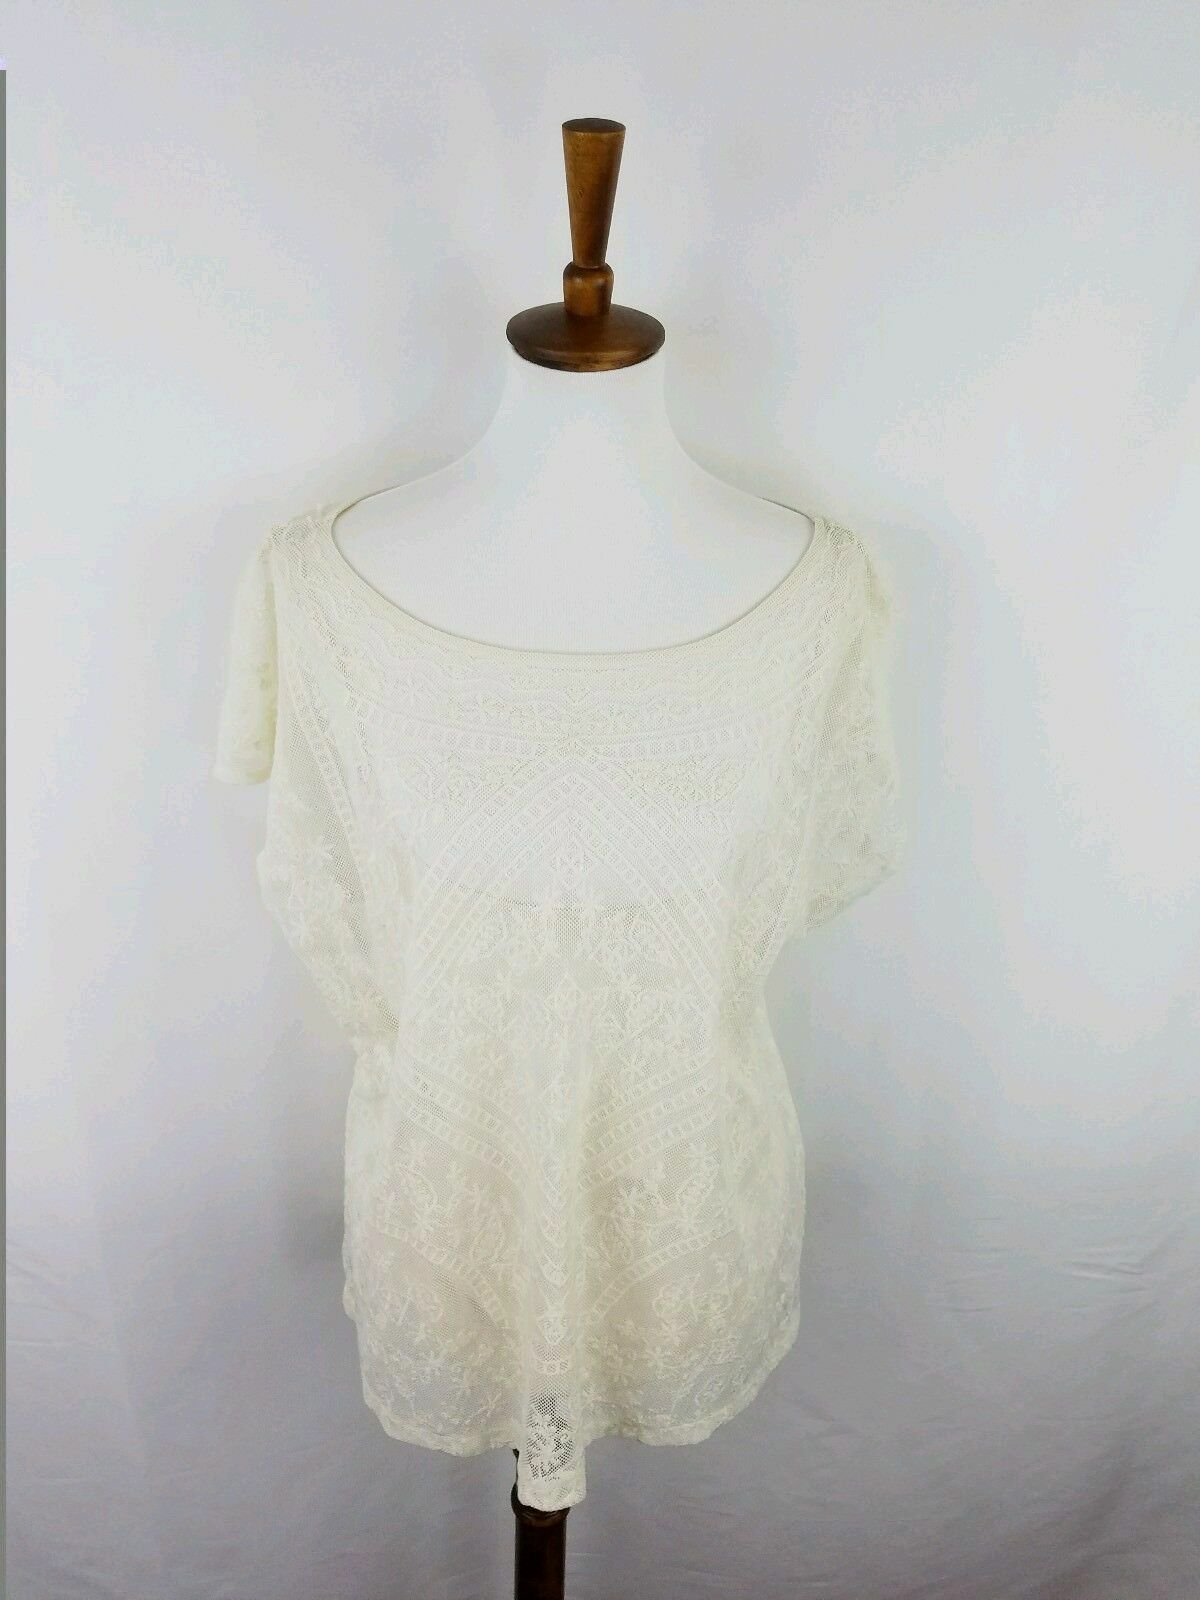 Ralph lauren cream colord sheer lace shell with attached cami NWT 89.50